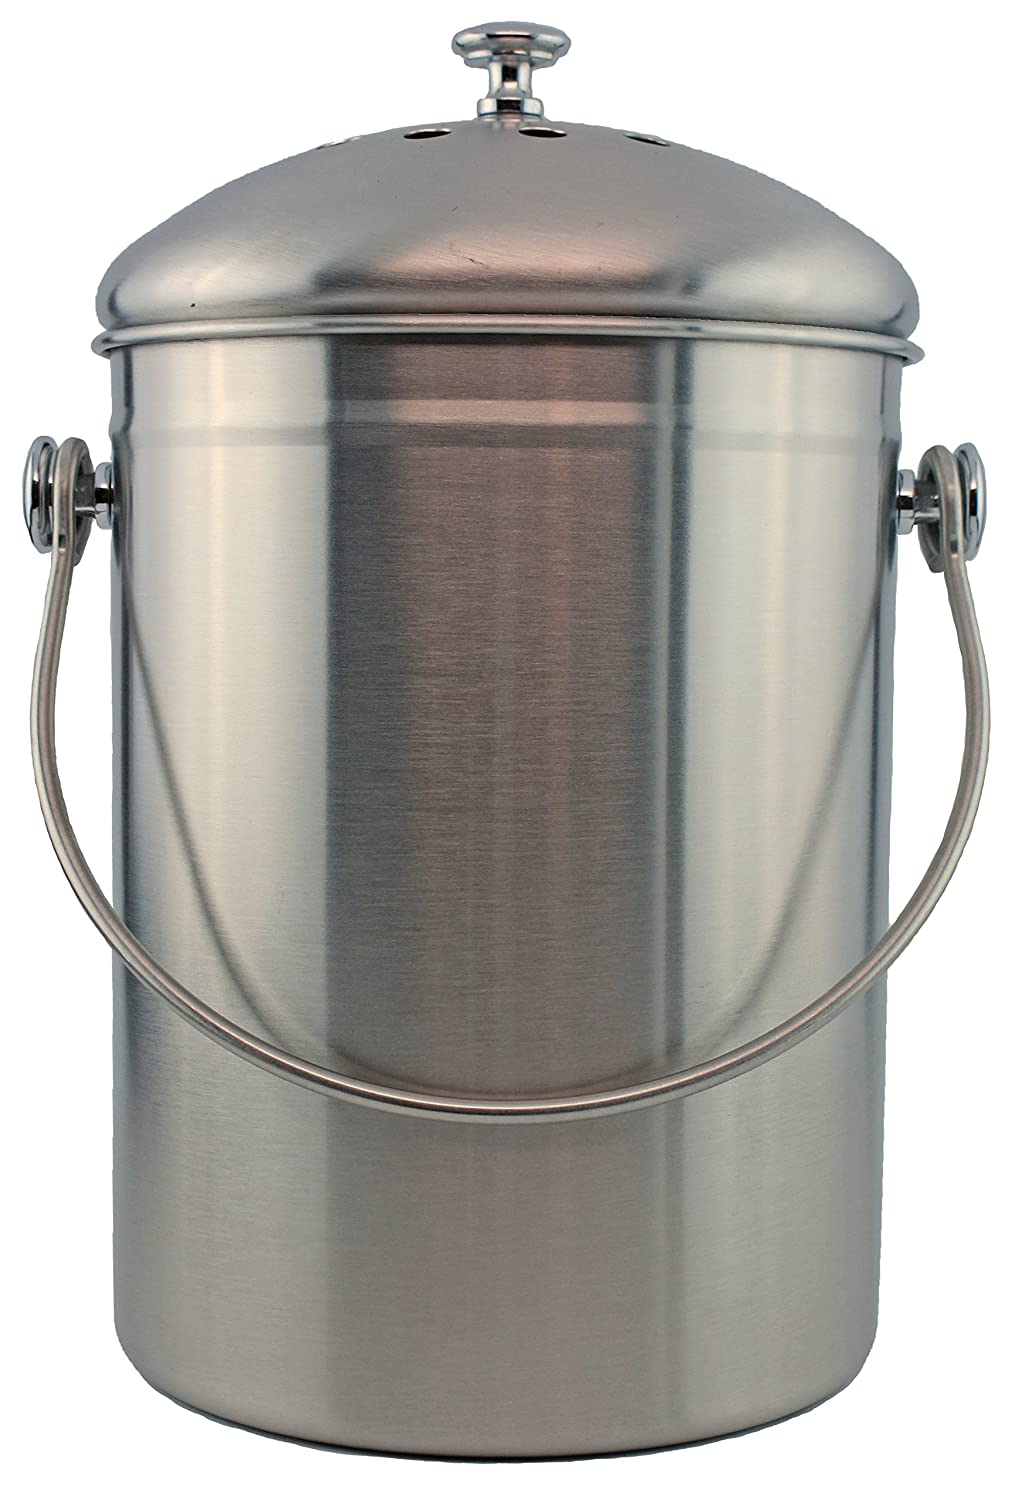 Amazon.com : Stainless Steel 1 Gallon Compost Pail With Filter (Stainless)  : Garden U0026 Outdoor